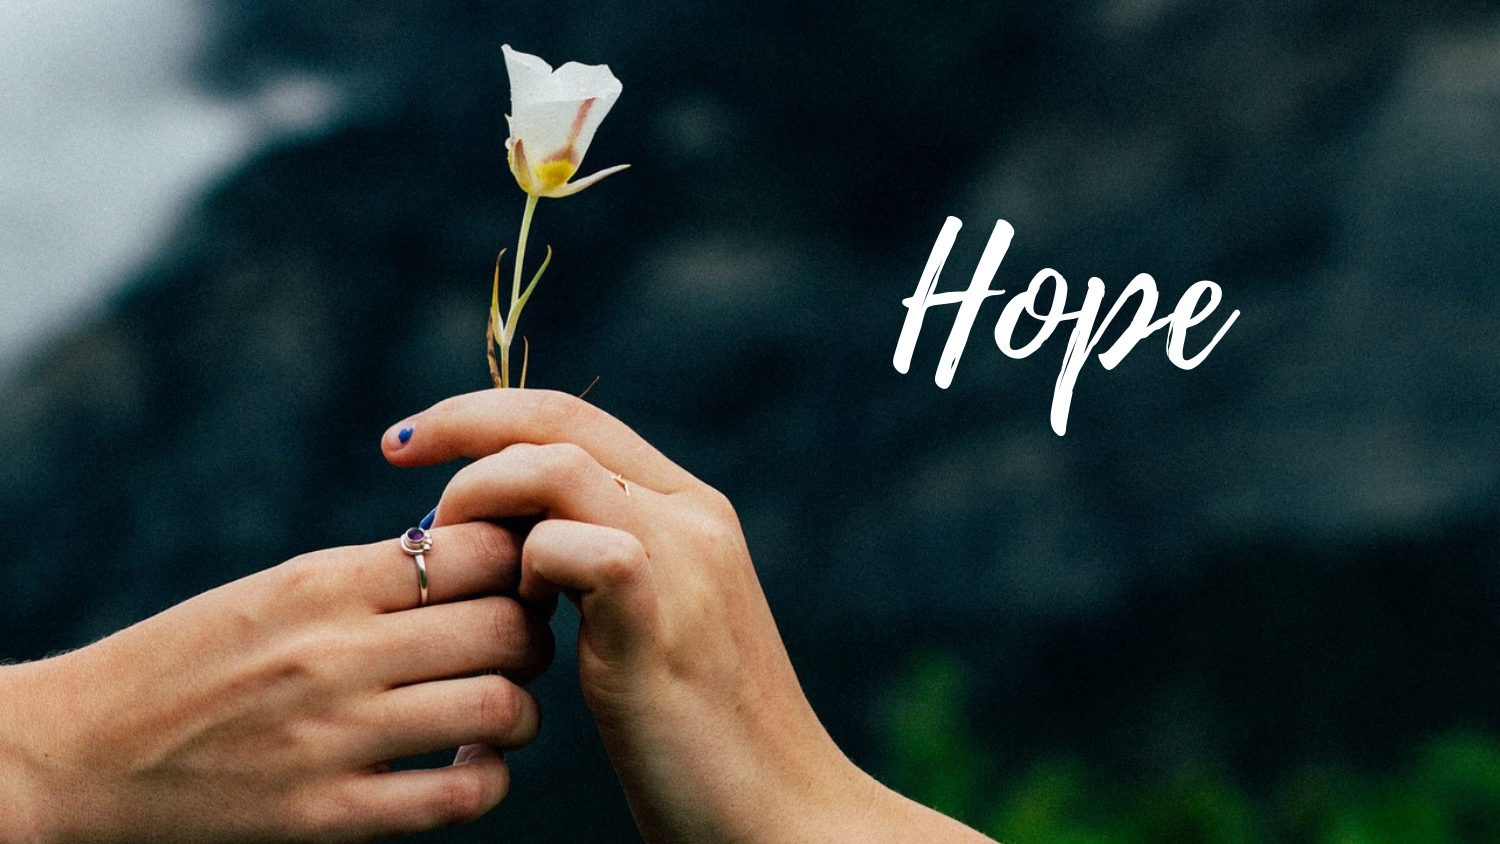 hope givers